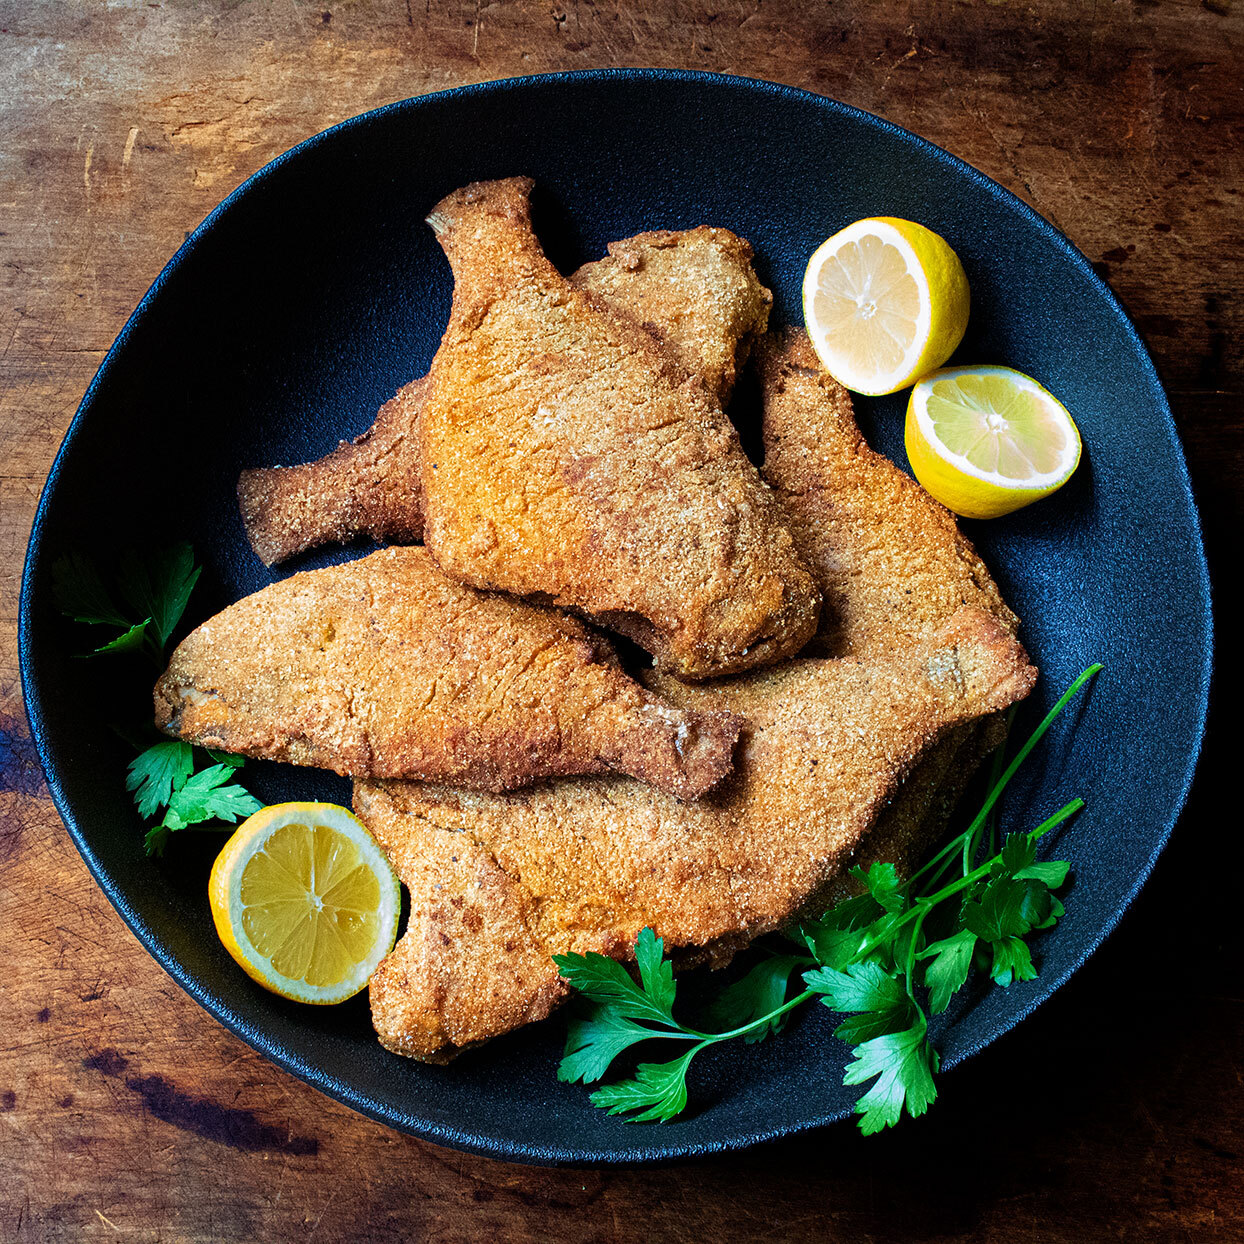 Fried Porgies